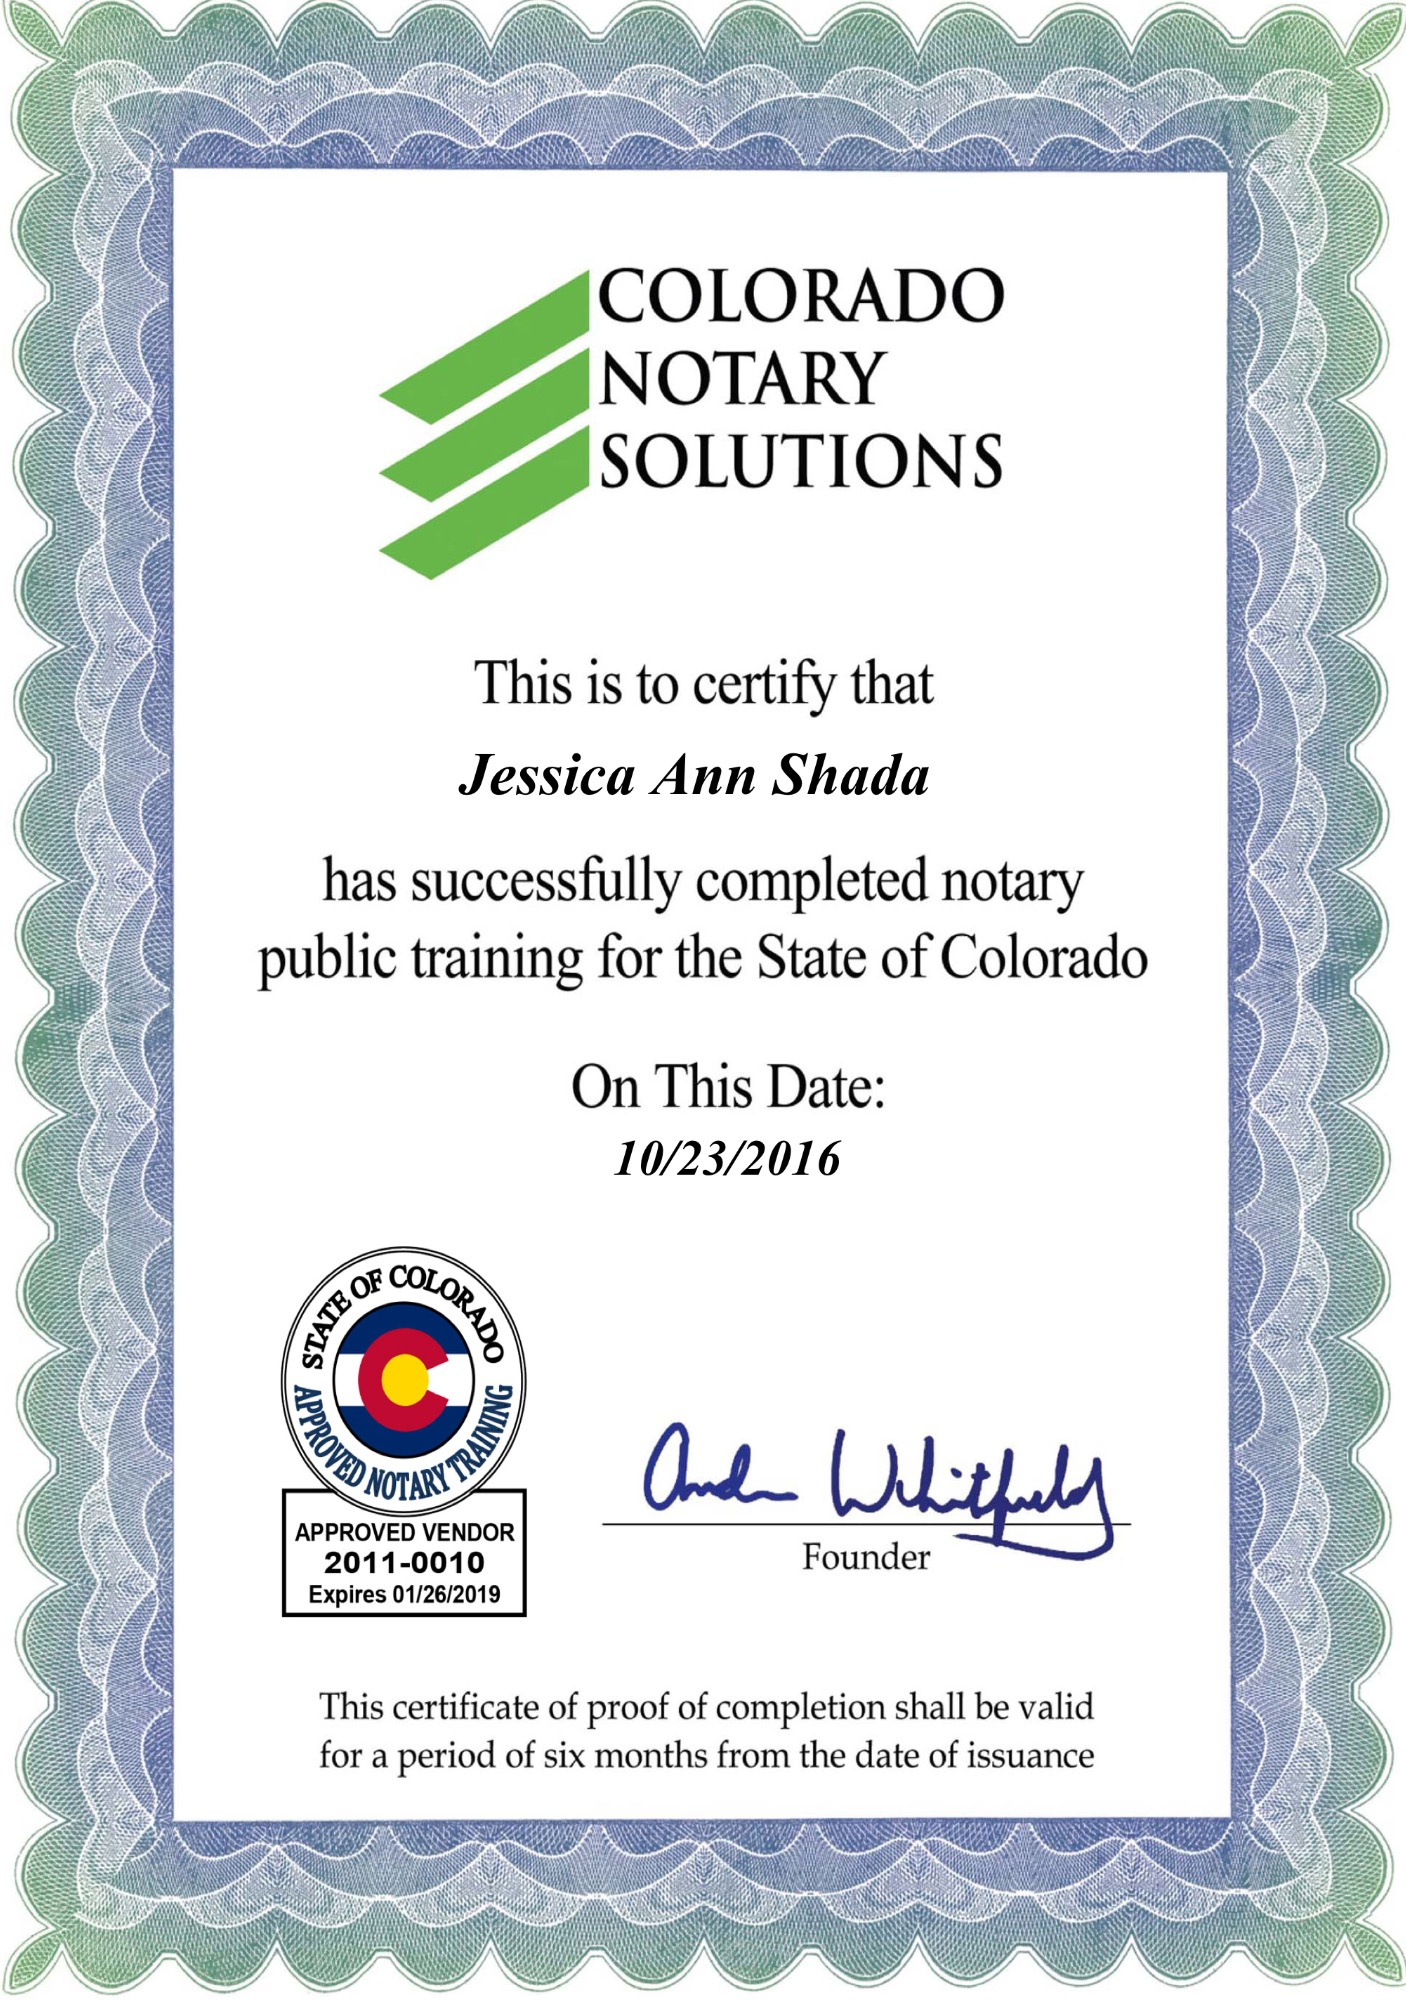 Notary public state of colorado jessica shada education certificate xflitez Gallery